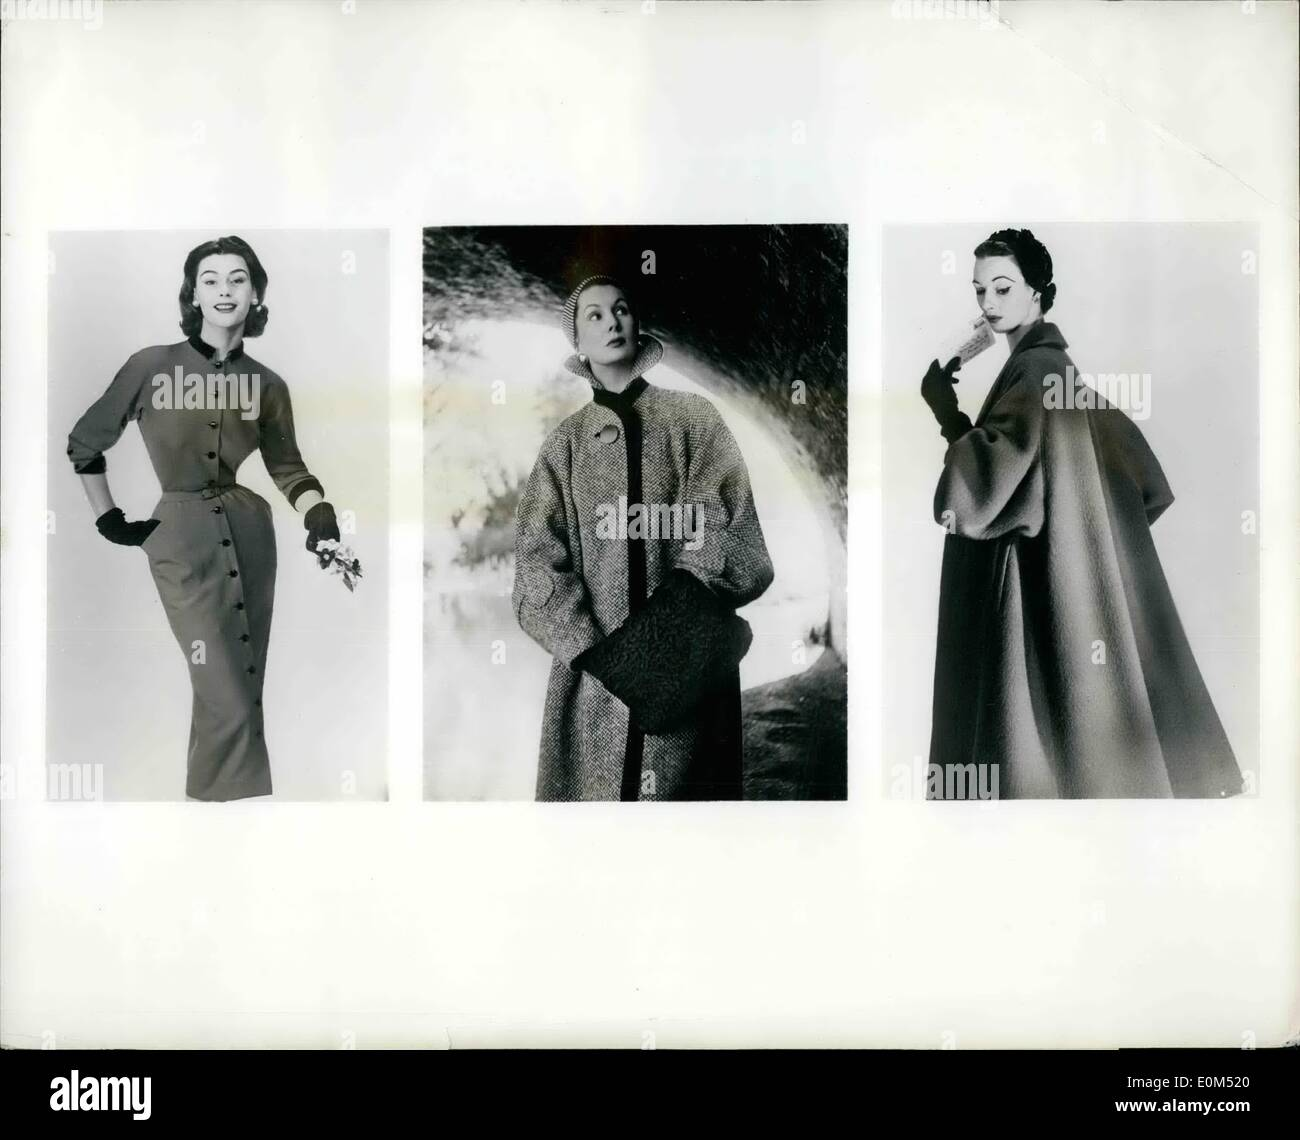 Dress Tight Sleeves Immagini   Dress Tight Sleeves Fotos Stock - Alamy 8686319c1330